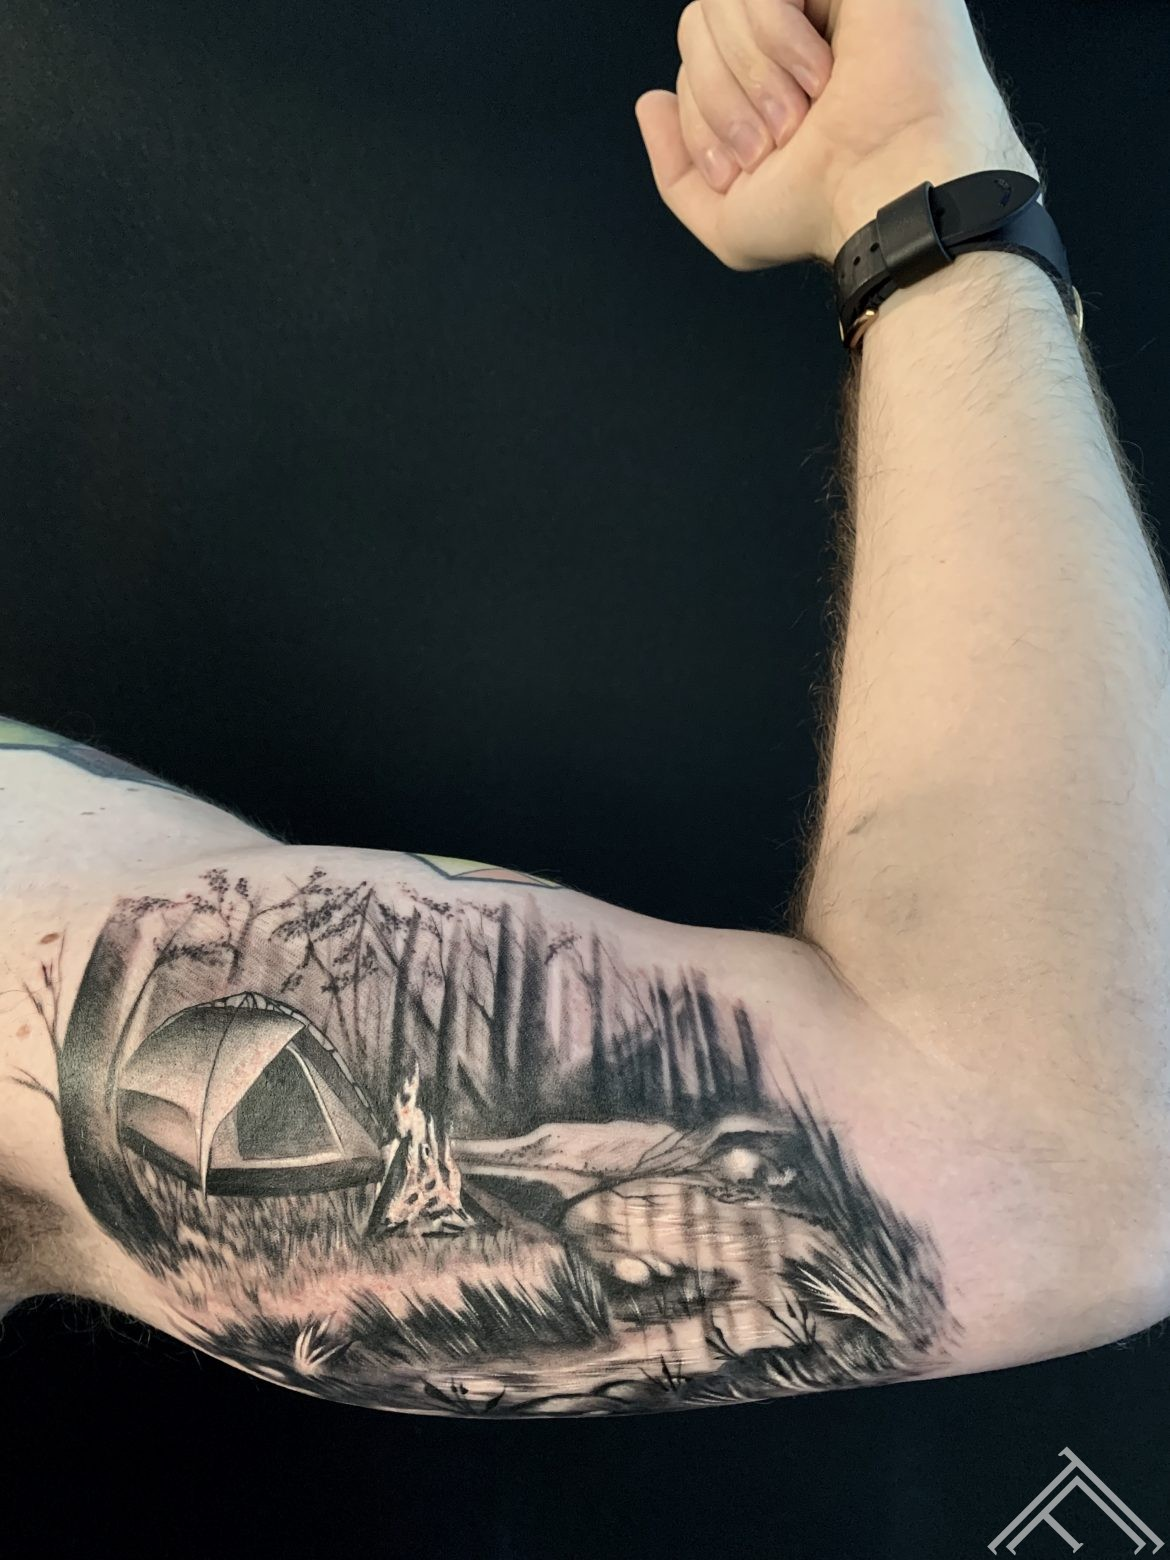 tent-travel-nature-forest-wild-dmitryrazin-tattoo-tattoofrequency